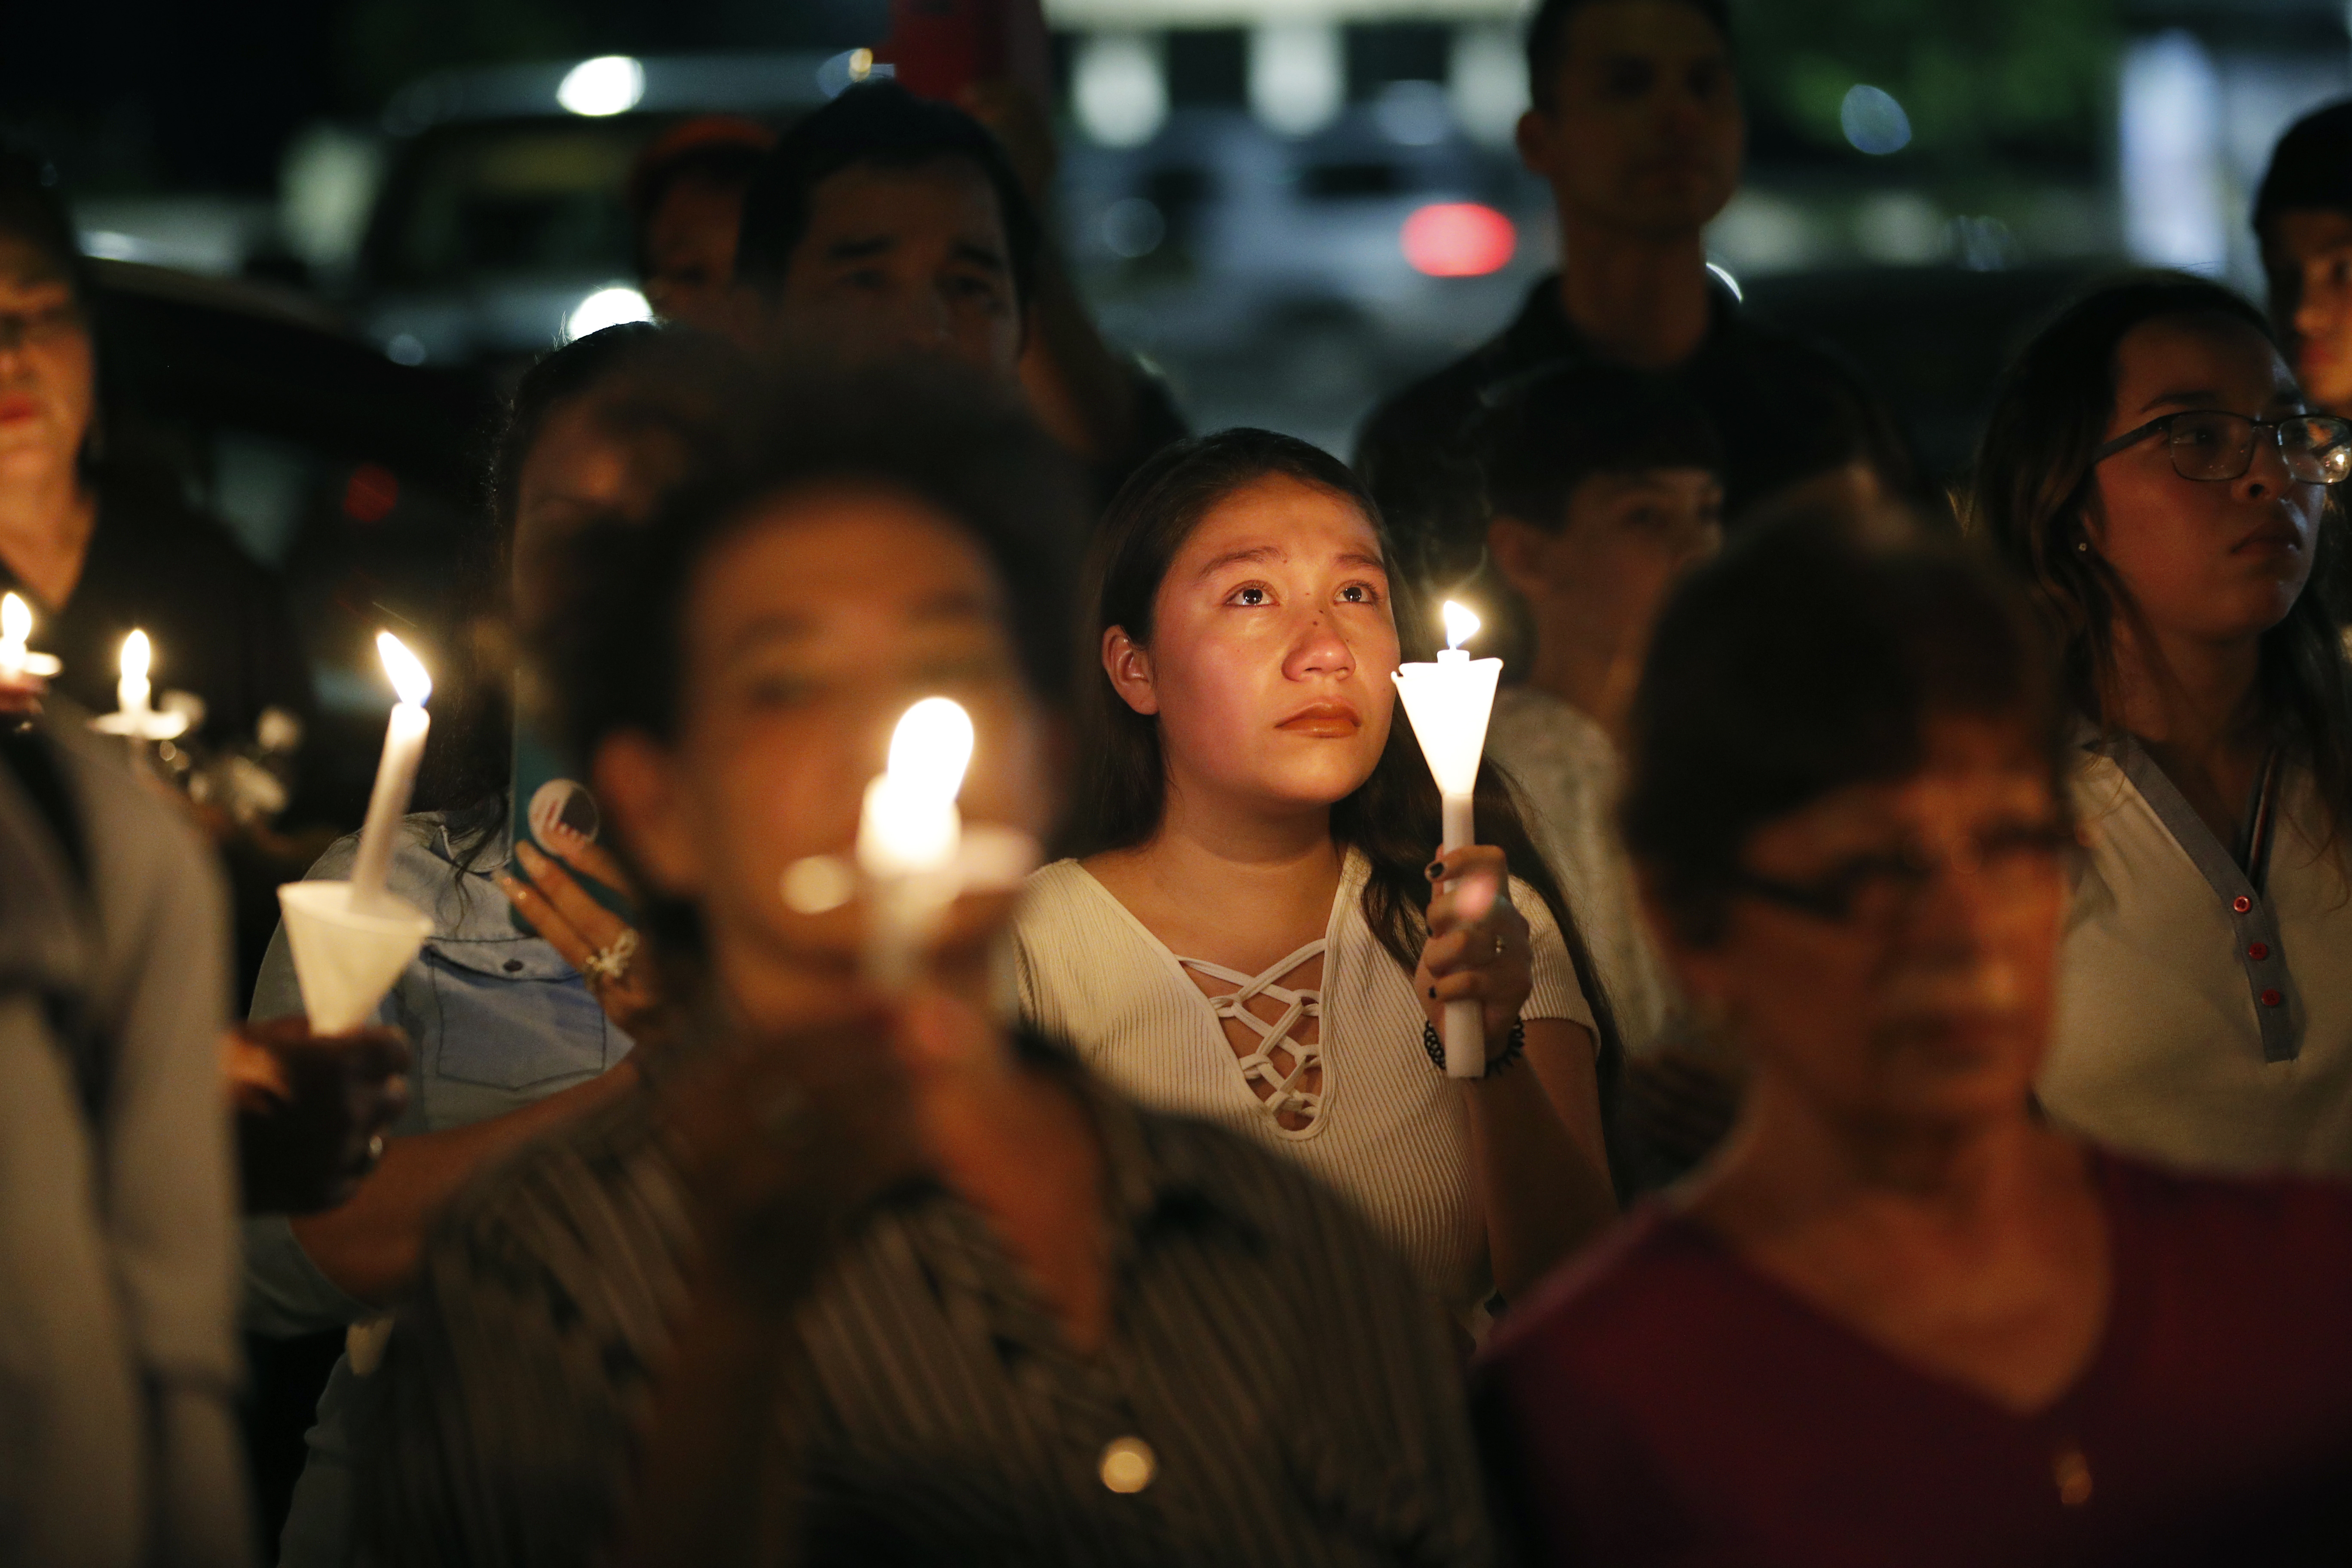 List of 253 mass shootings in US this year includes 5 in Alabama